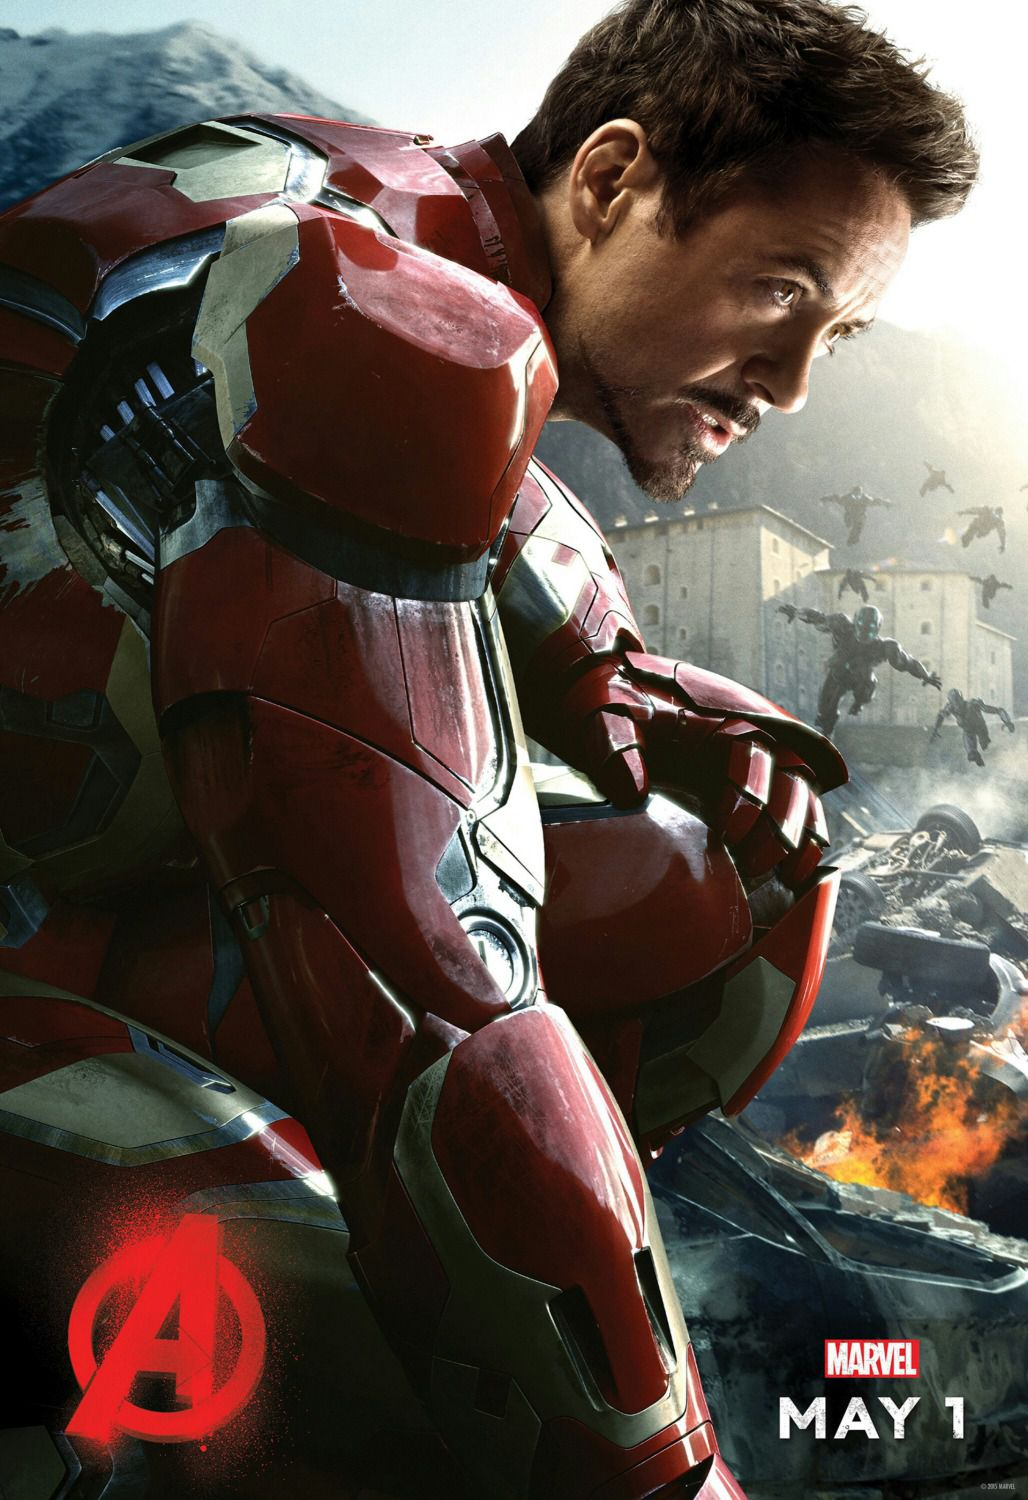 Avengers 2 - Age of Ultron . poster - Ironman